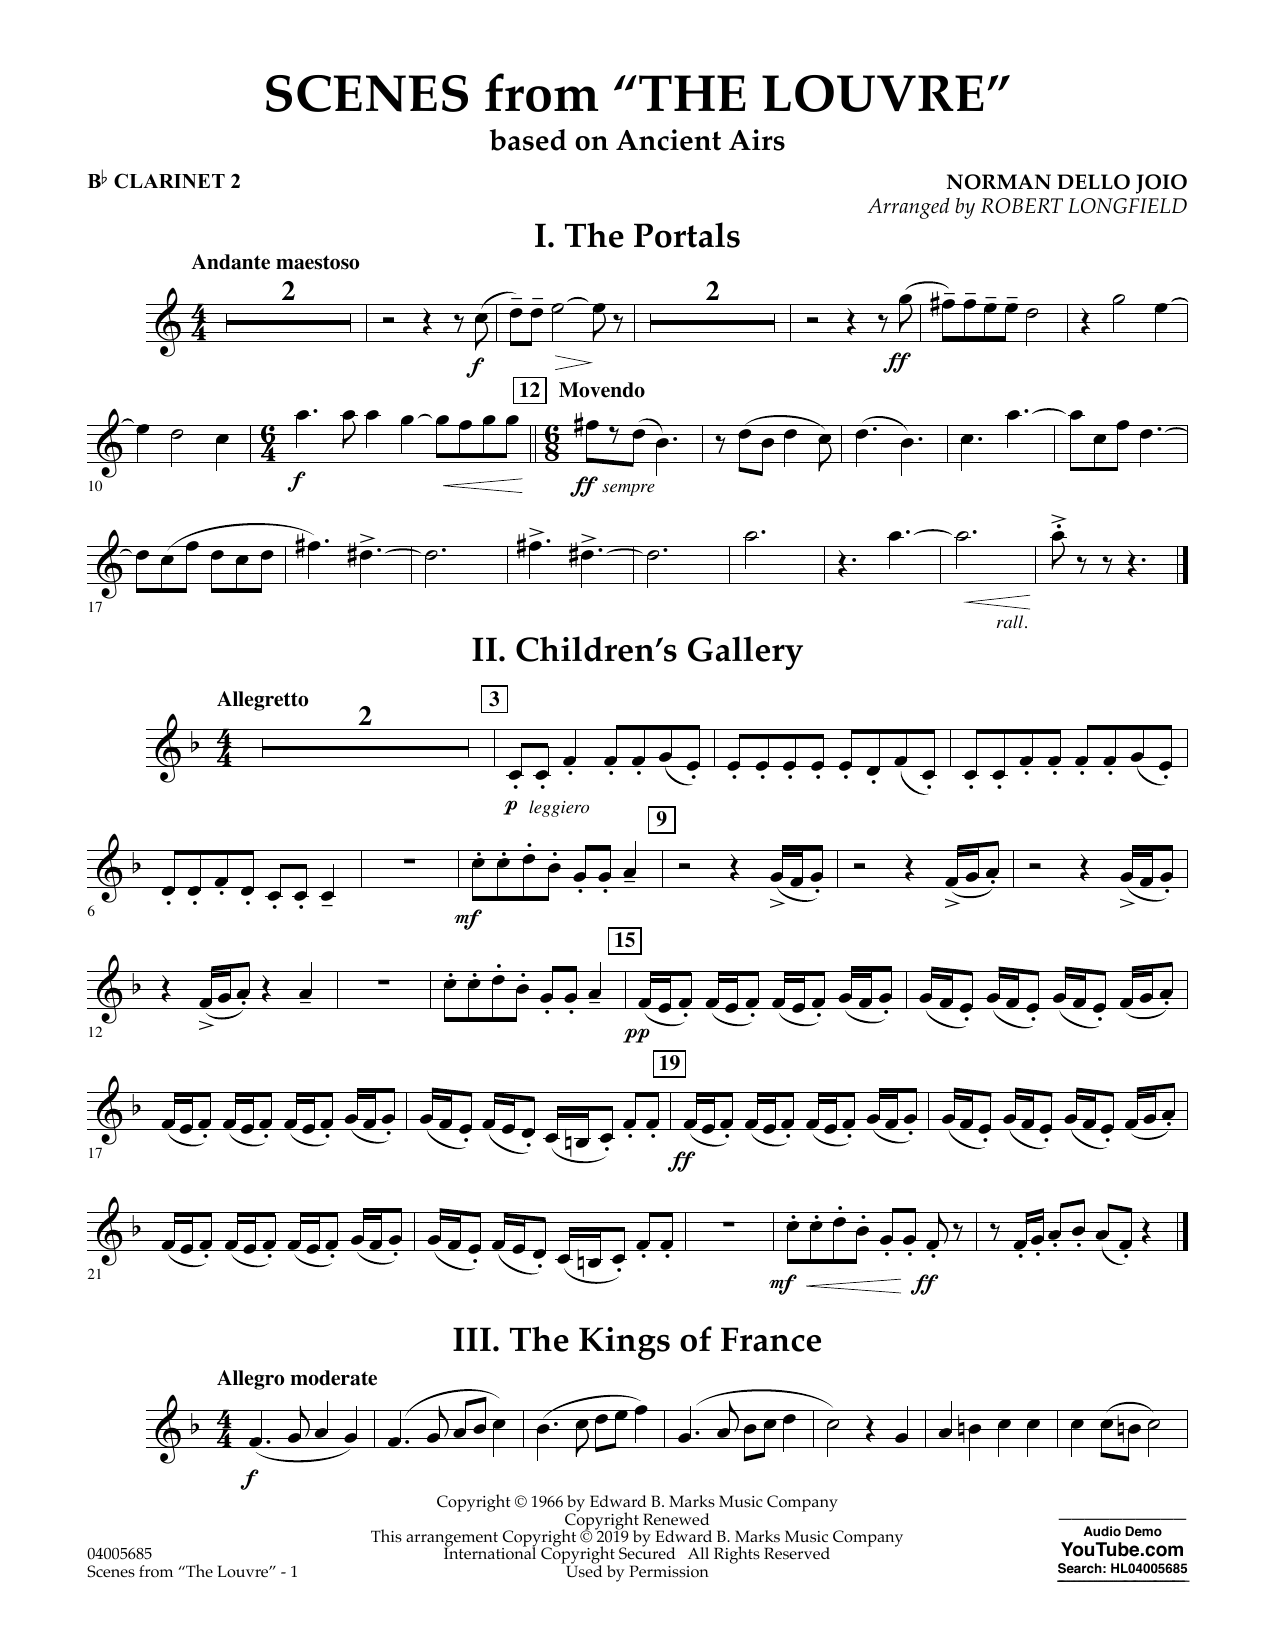 Norman Dello Joio Scenes from the Louvre (arr. Robert Longfield) - Bb Clarinet 2 sheet music preview music notes and score for Concert Band including 2 page(s)